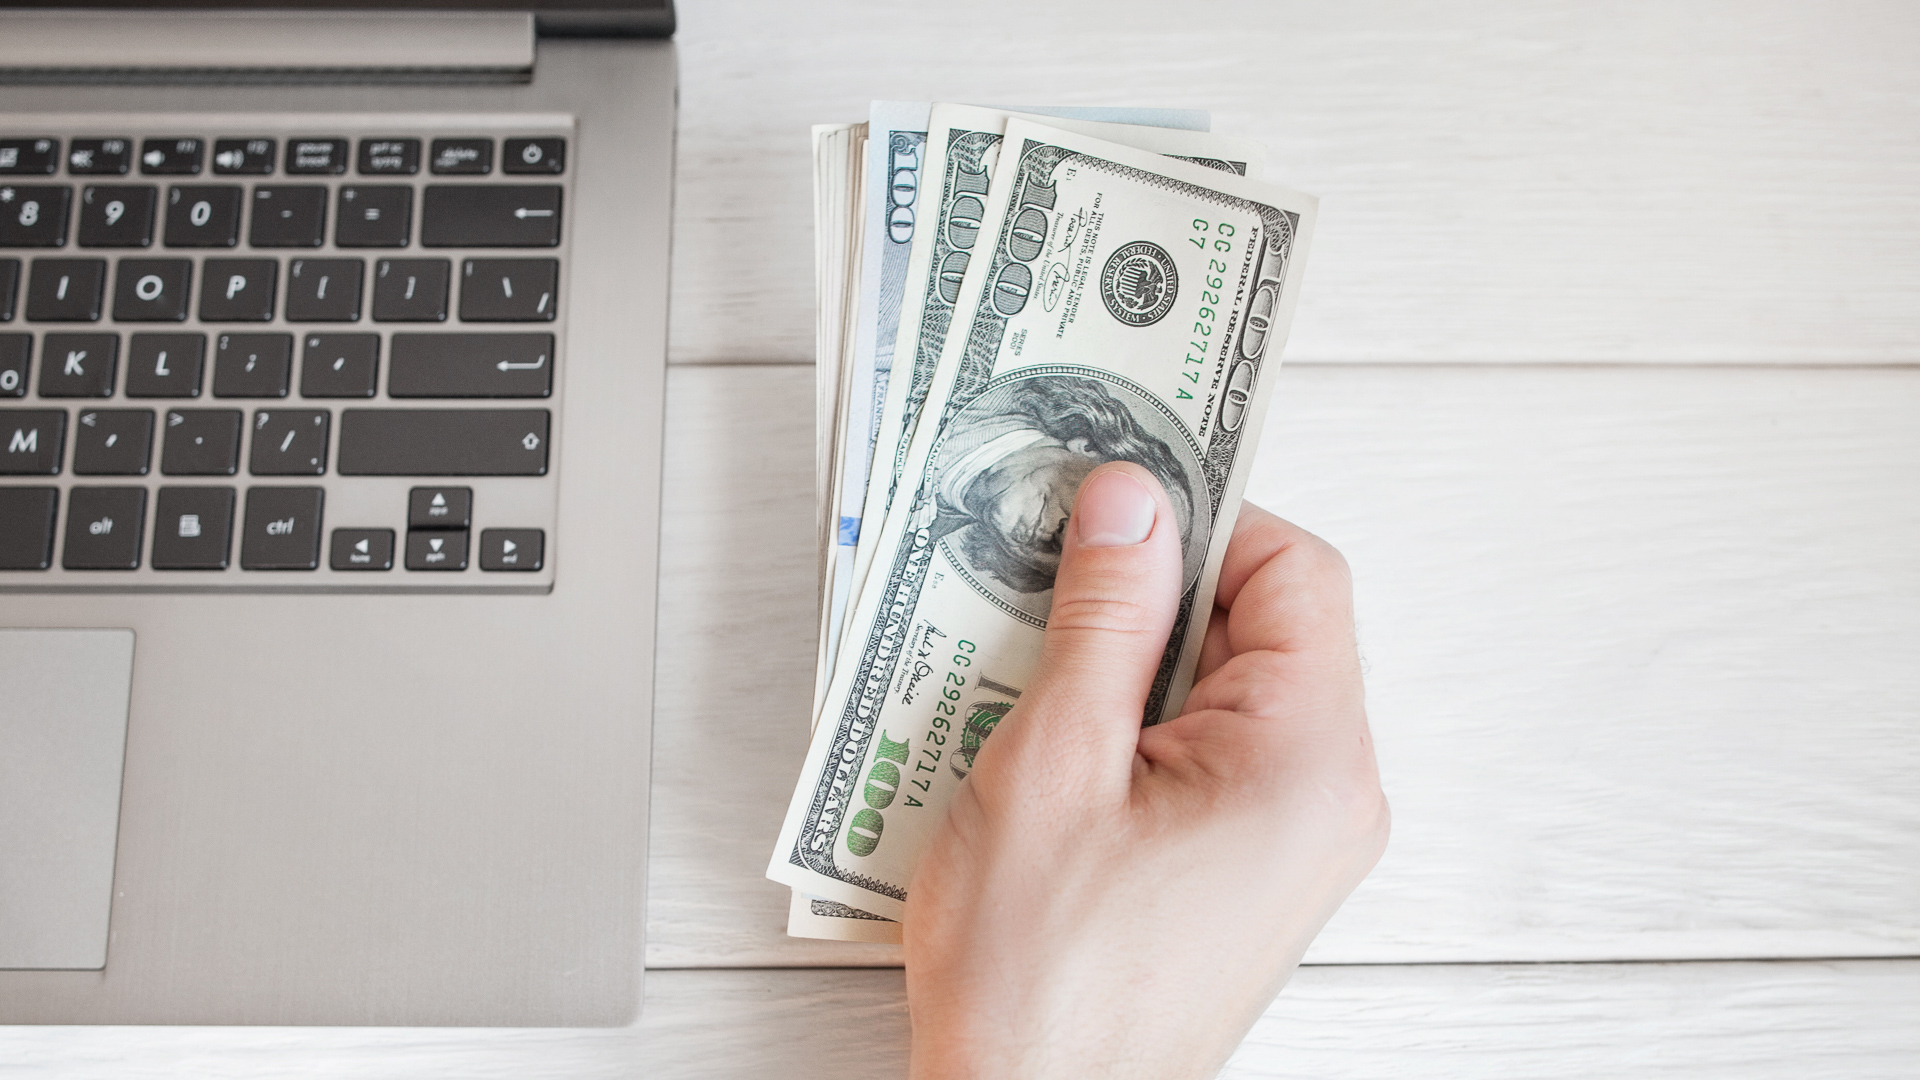 12 Free Ways to Send Money to Family and Friends | GOBankingRates